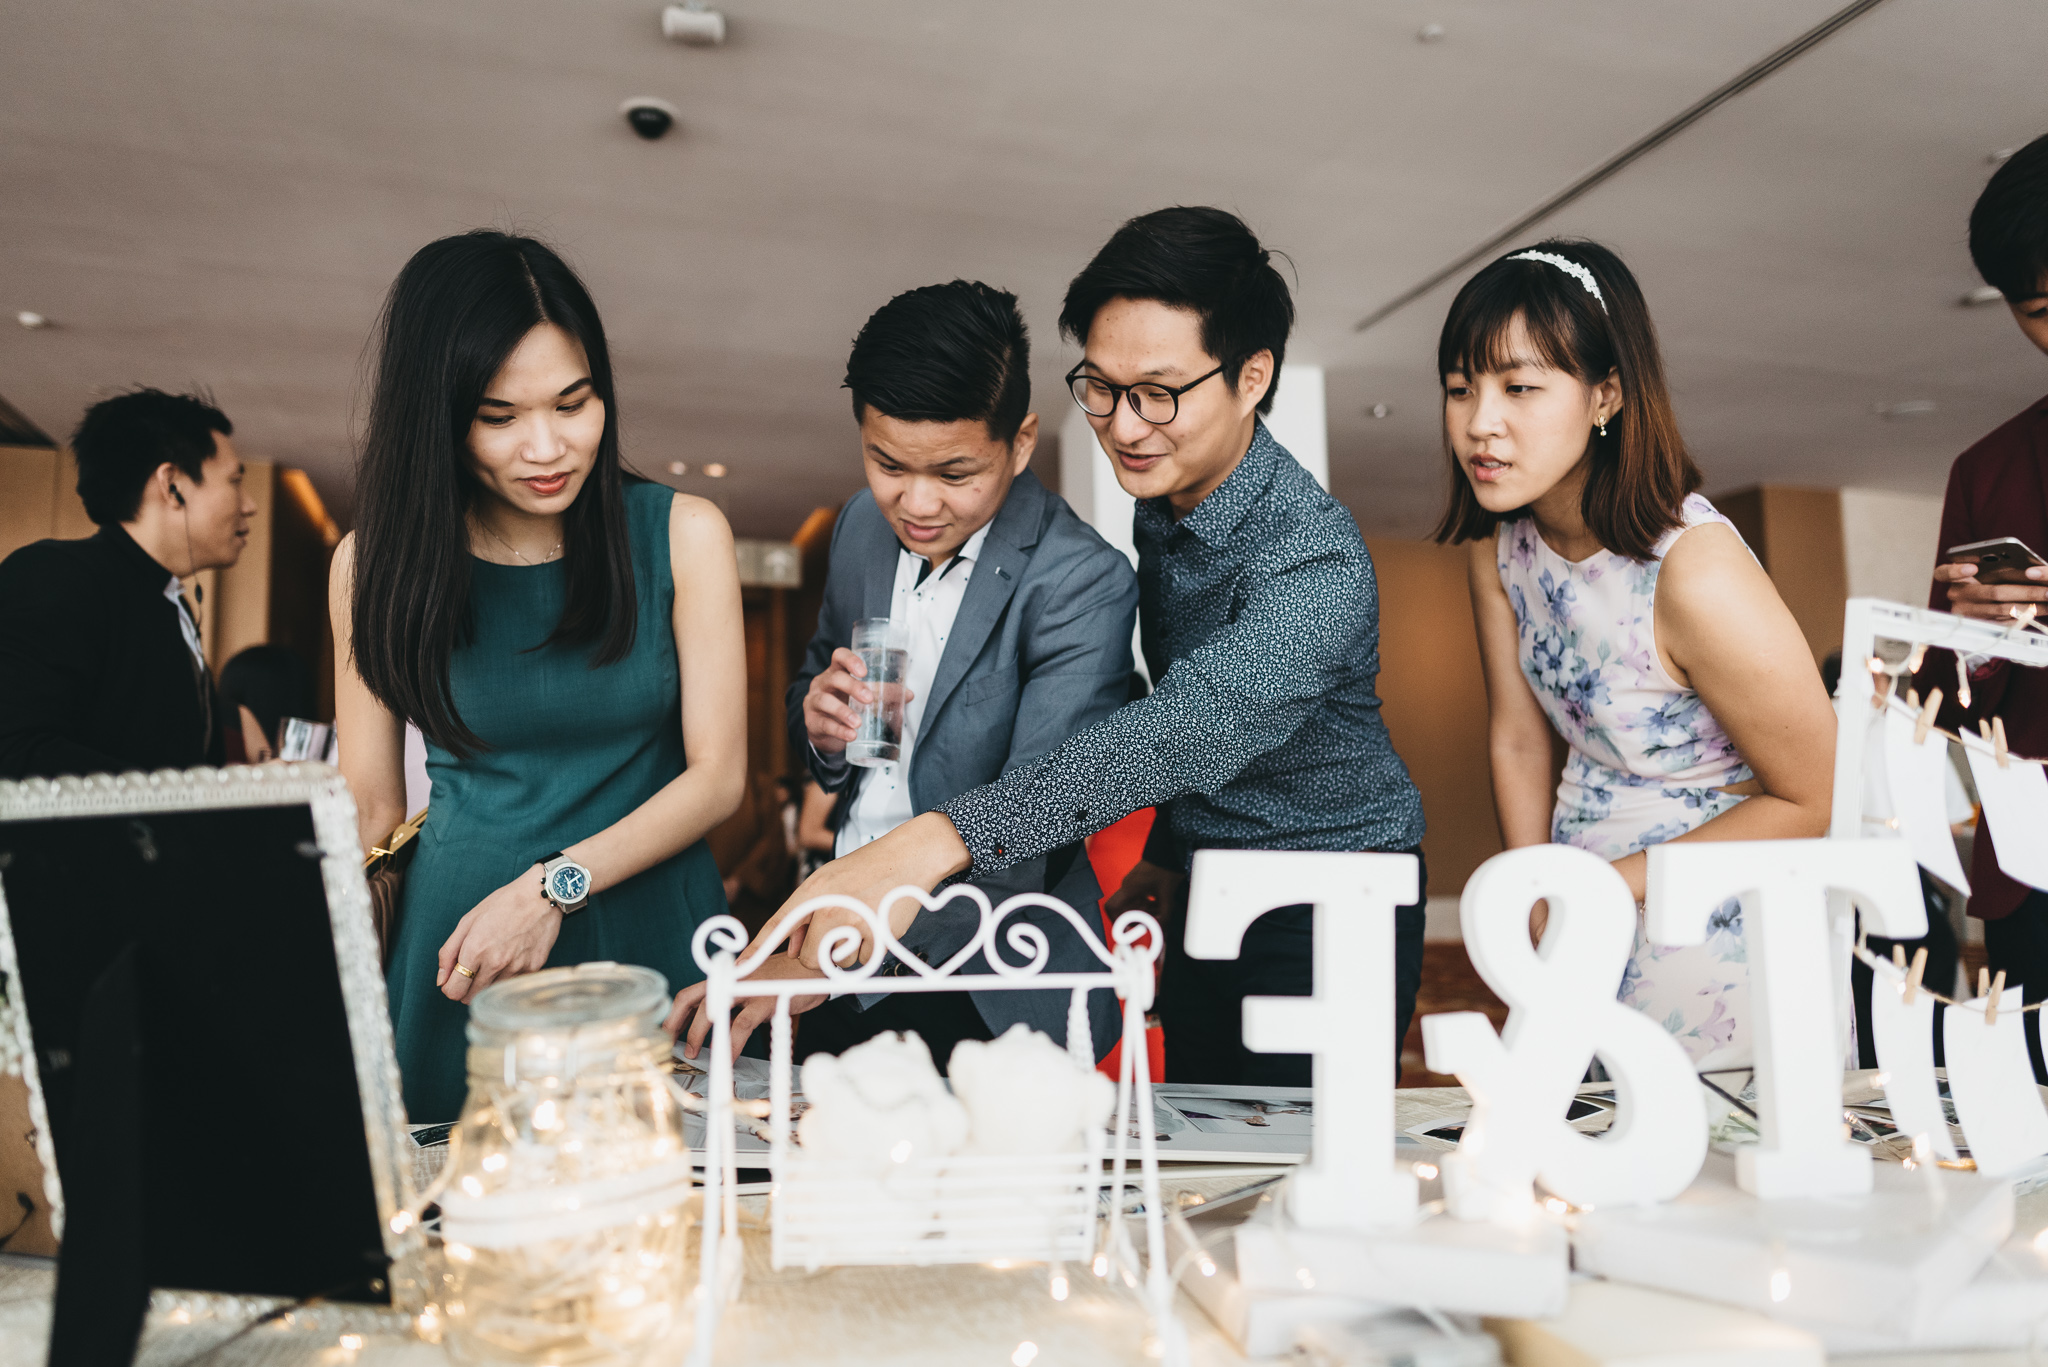 Fiona & Terence Wedding Day Highlights (resized for sharing) - 197.jpg